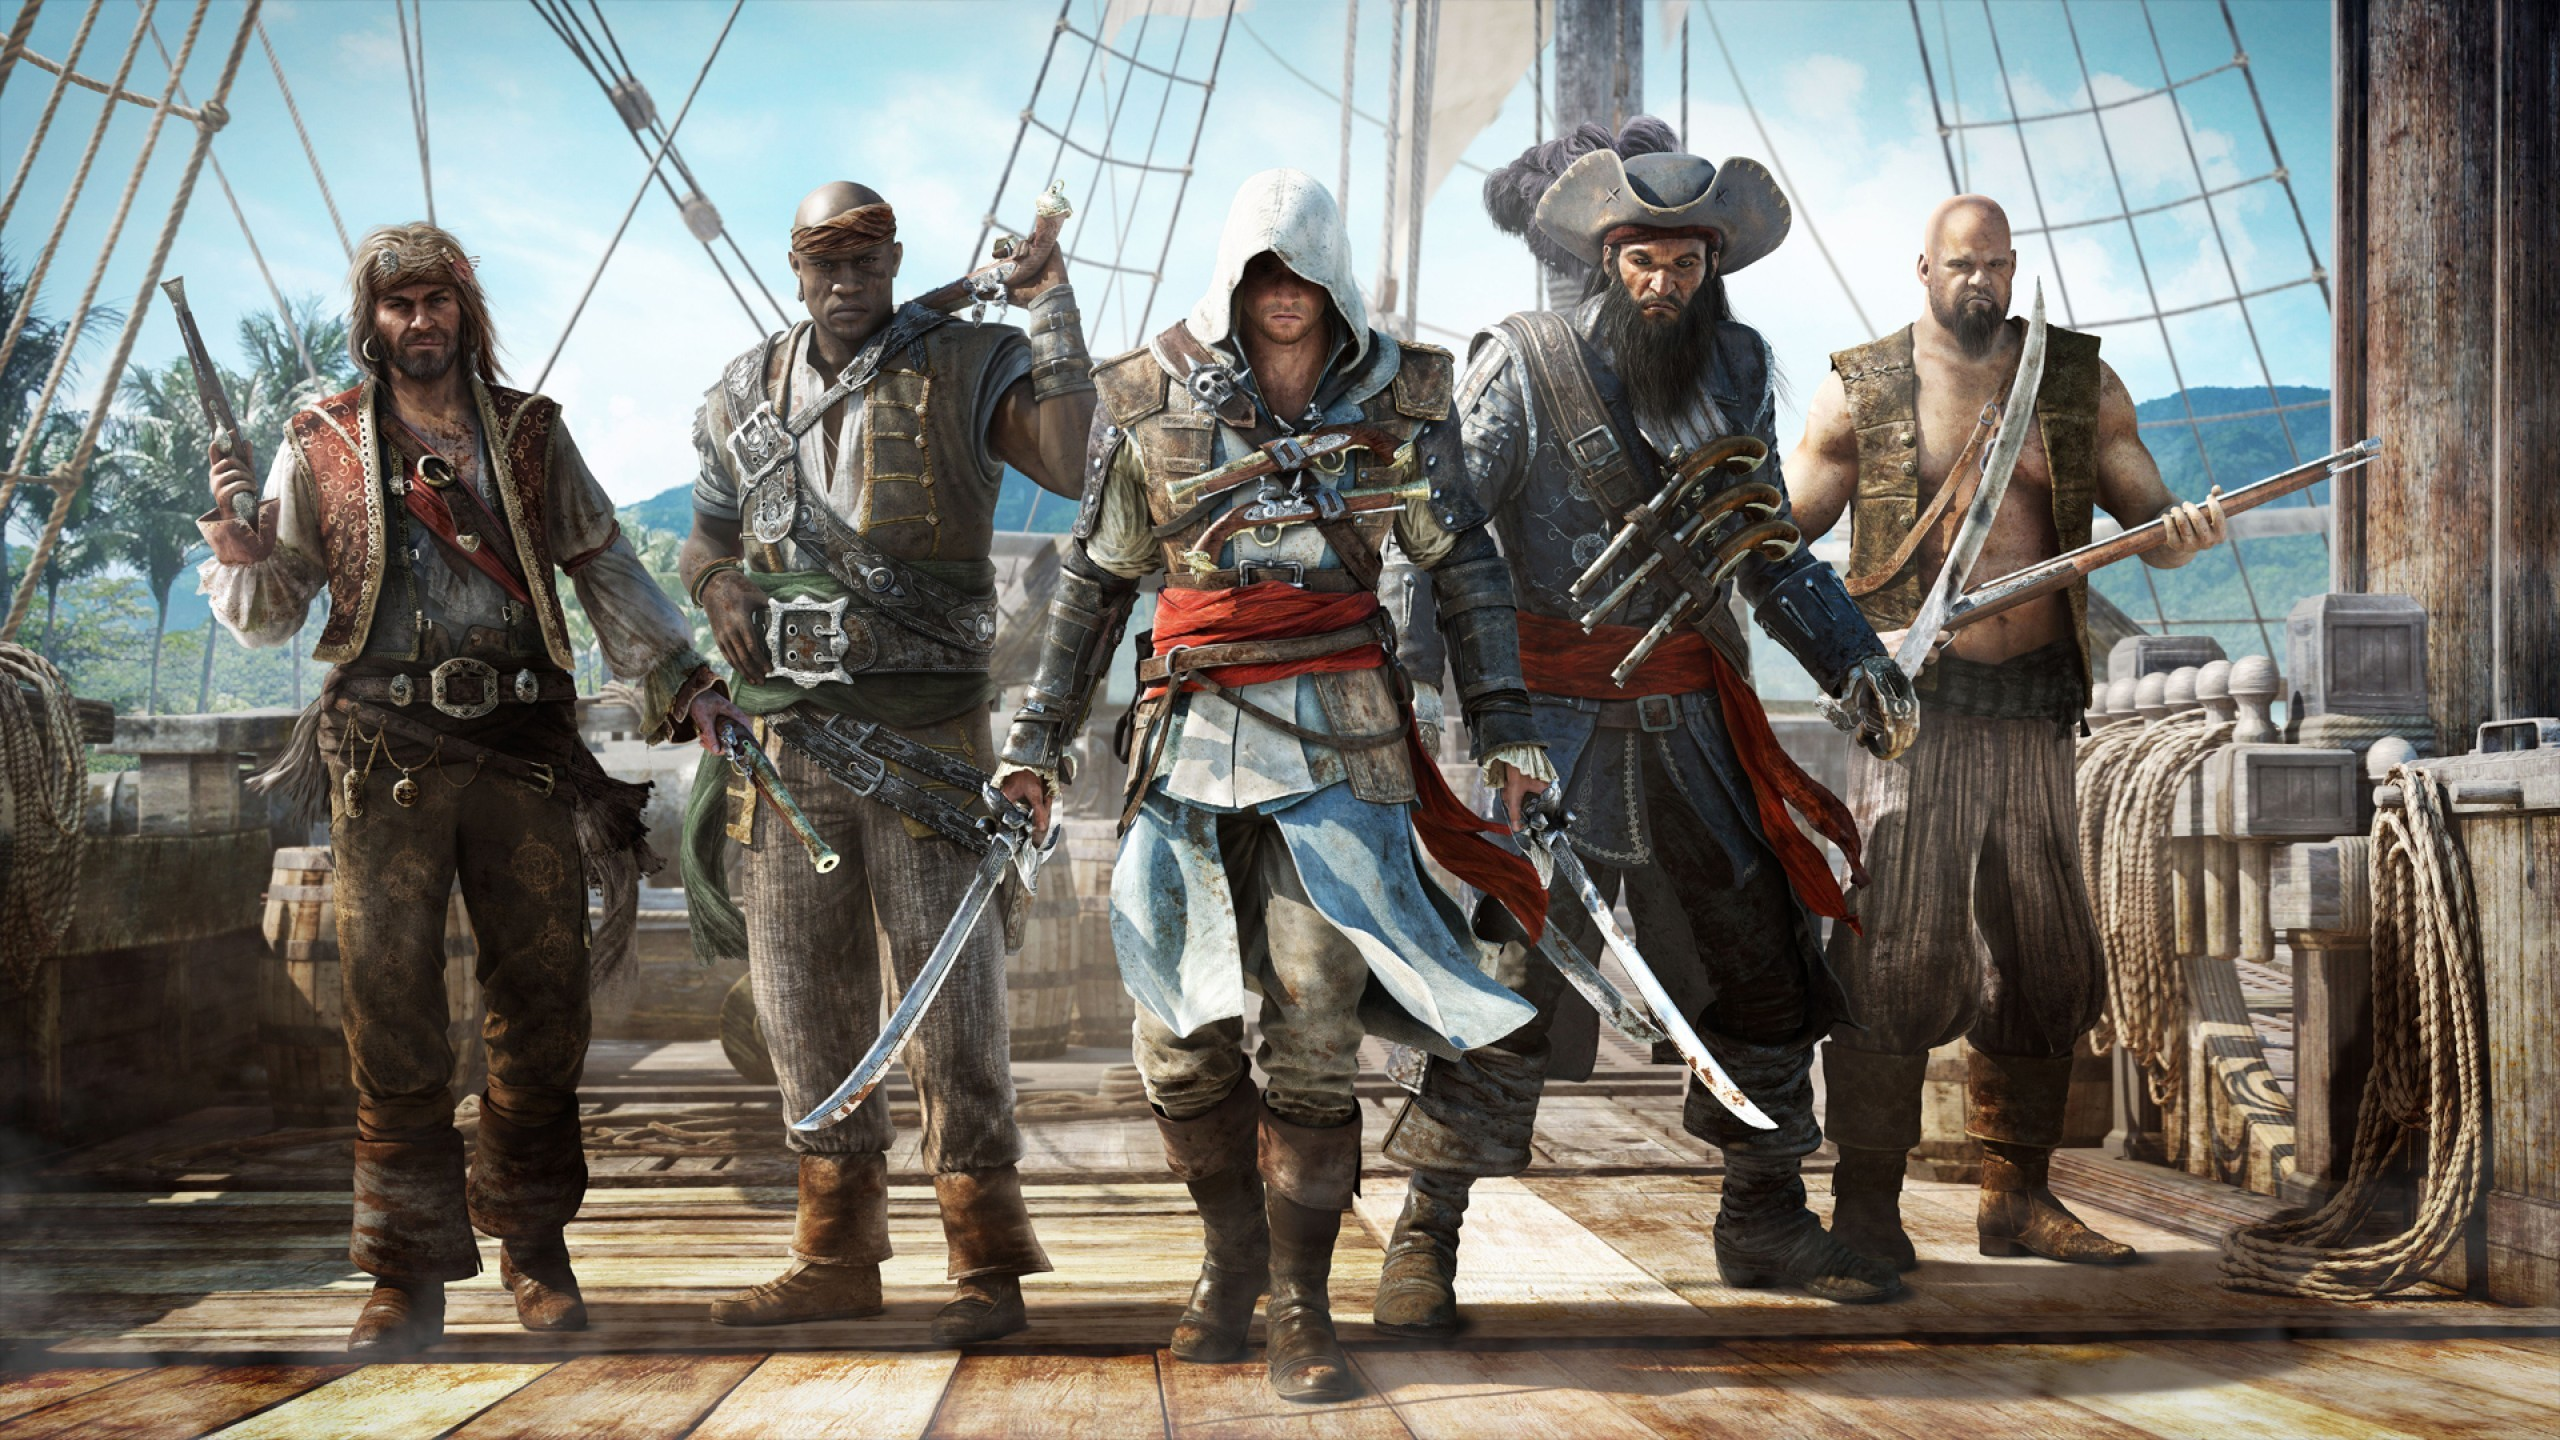 Assassins-Creed-Assassins-Creed-Black-Flag-Edward-Kenway-wallpaper-wp4003121